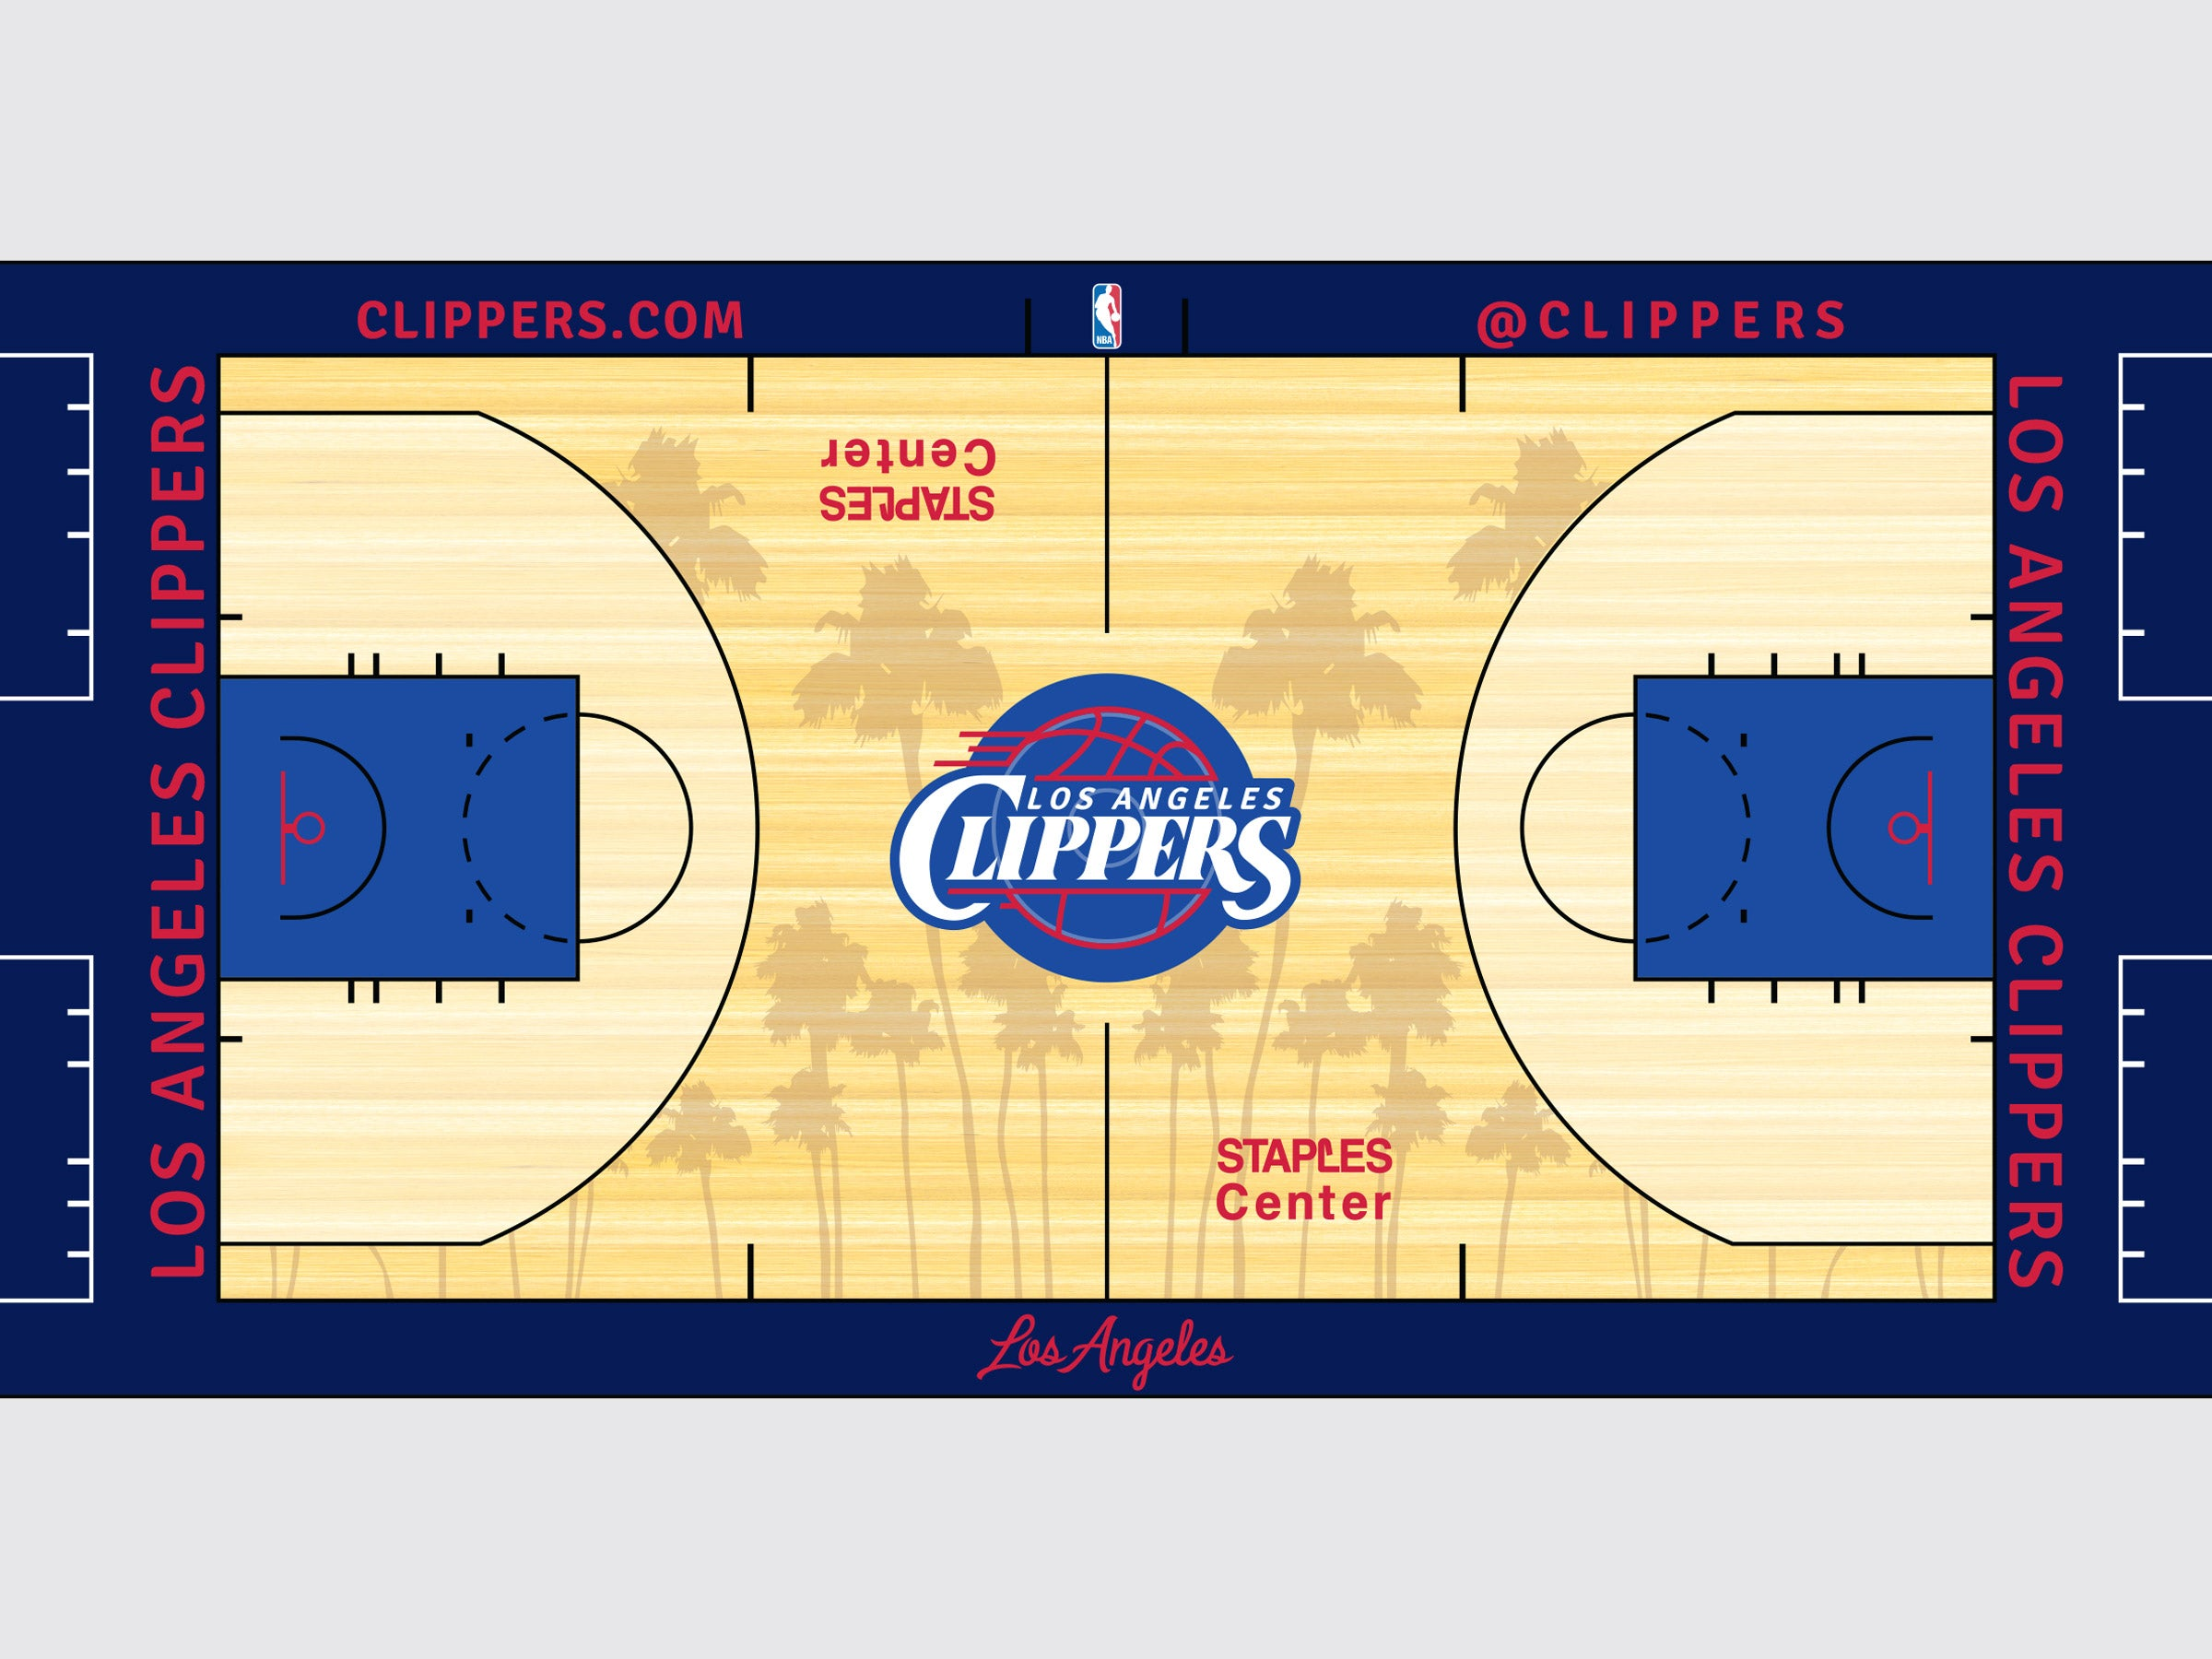 Los Angeles Clippers court rebrand